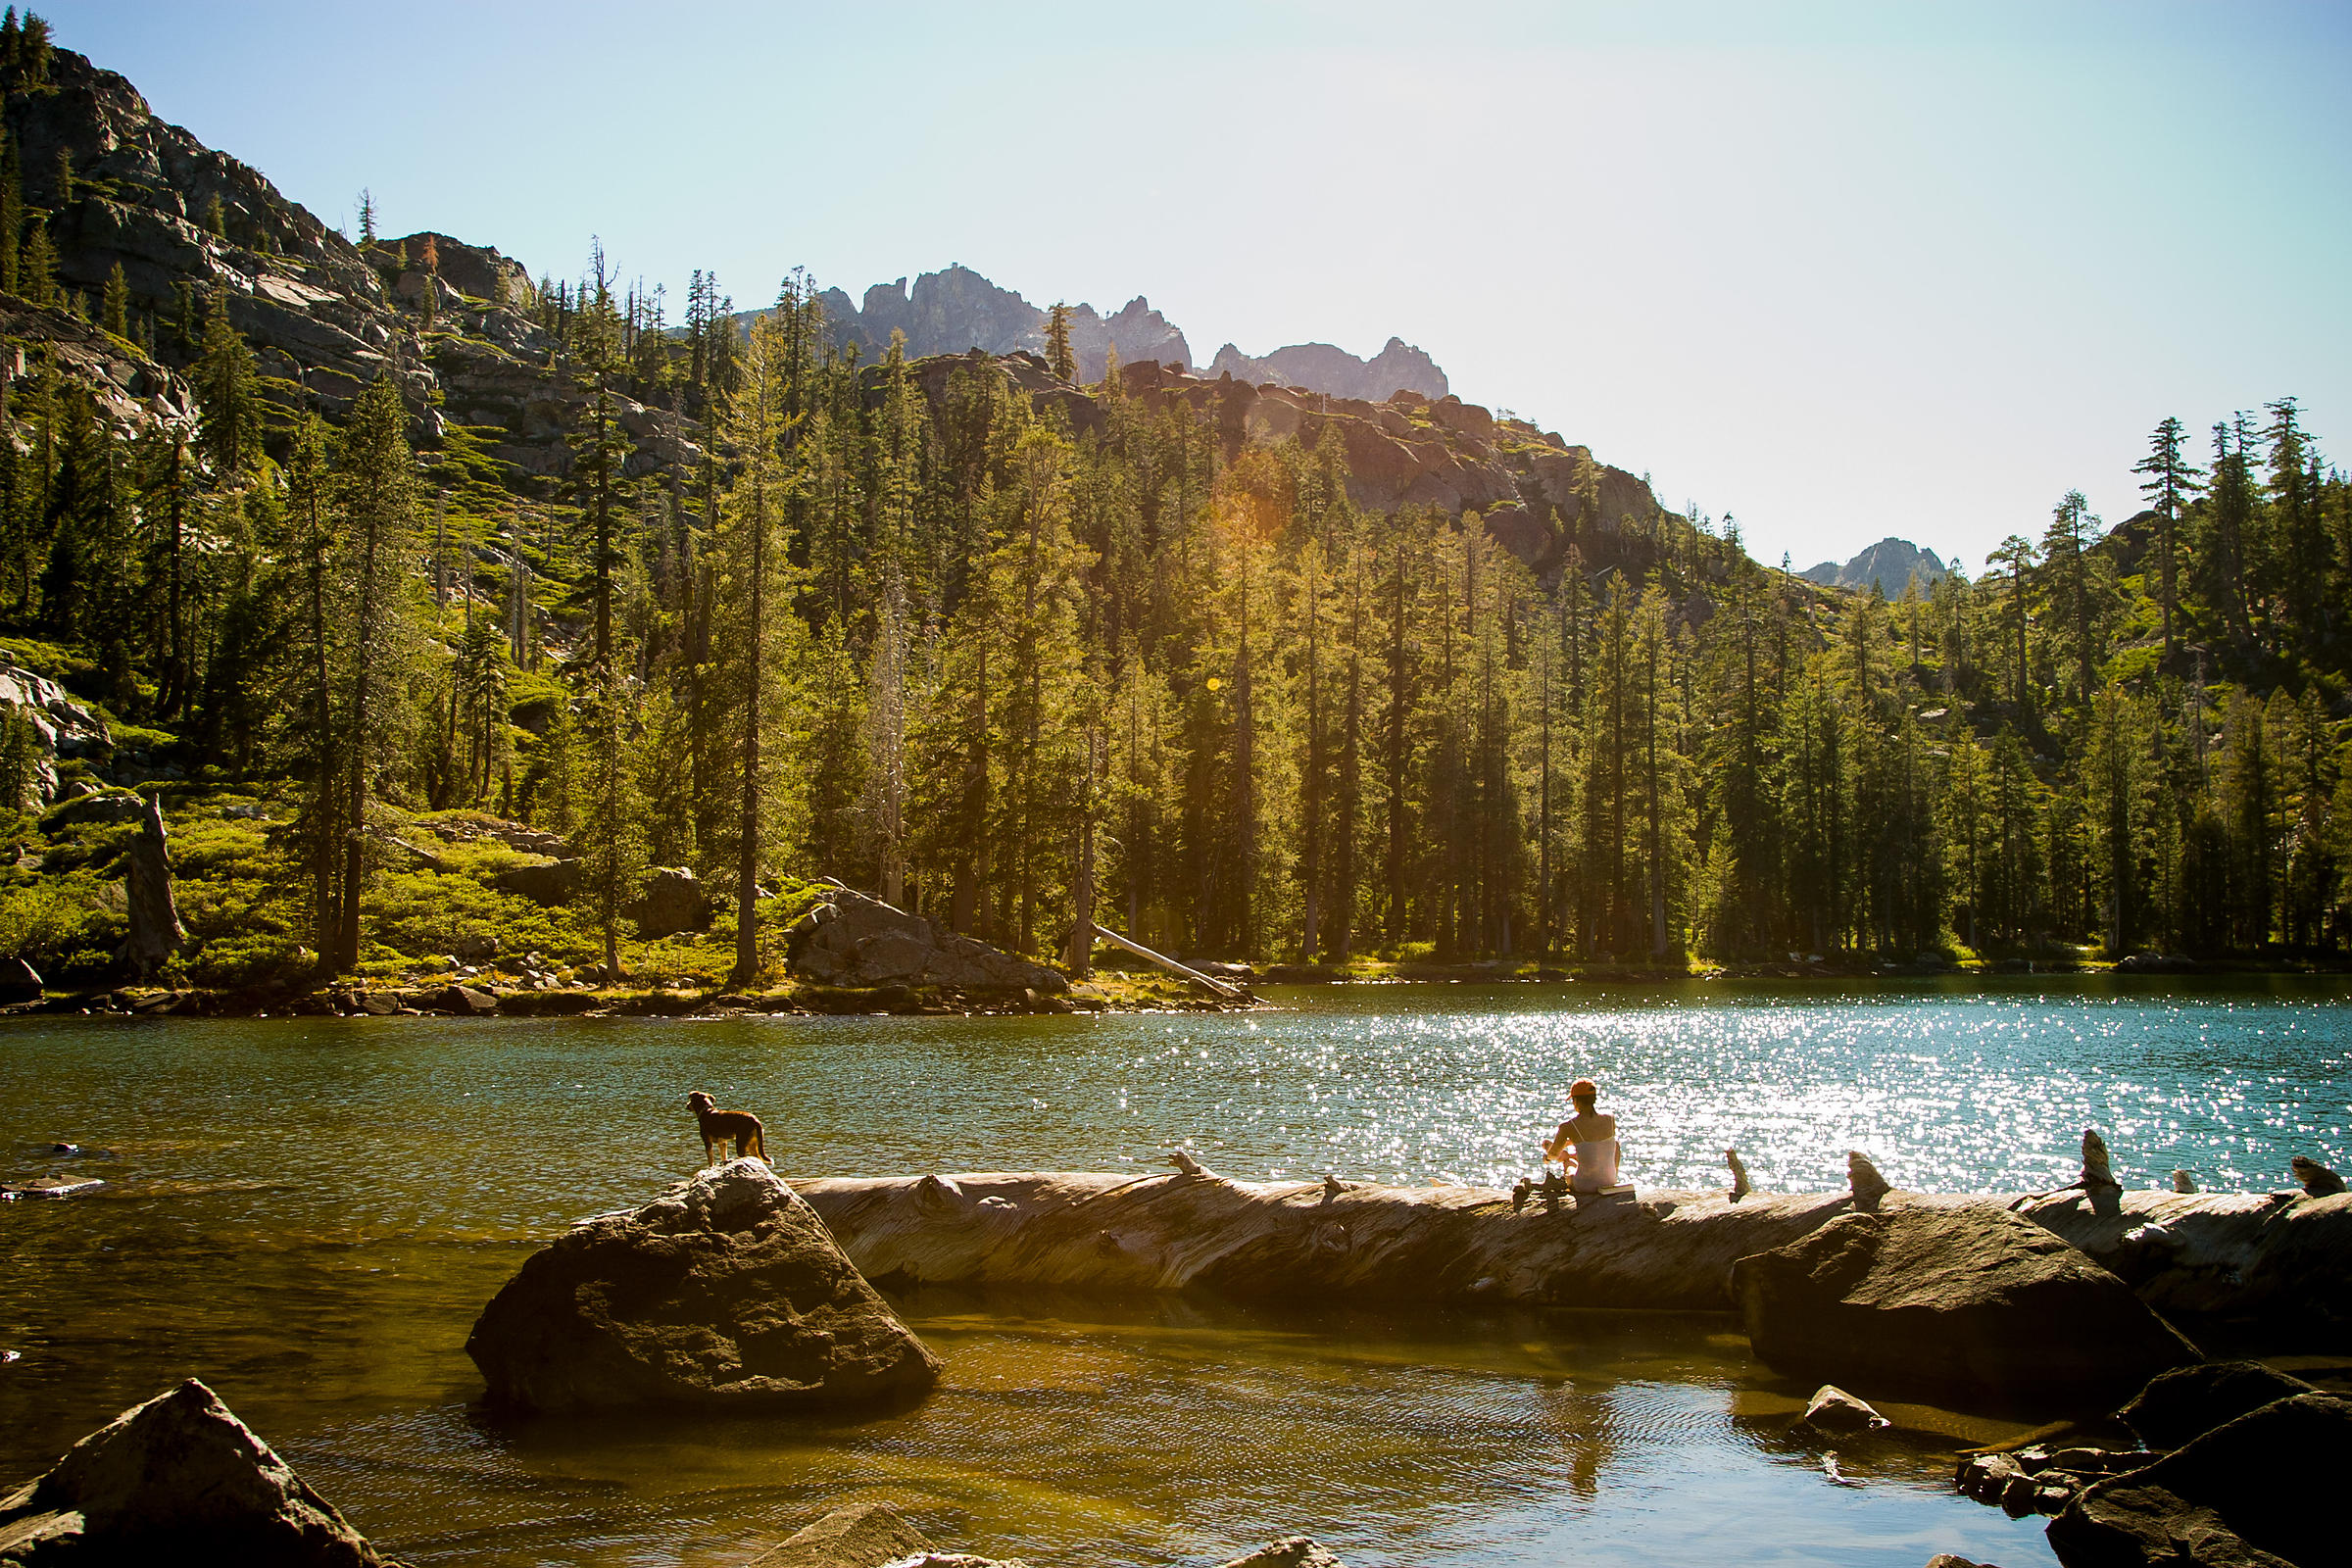 Outdoor lifestyle photography by Jason Tinacci, California